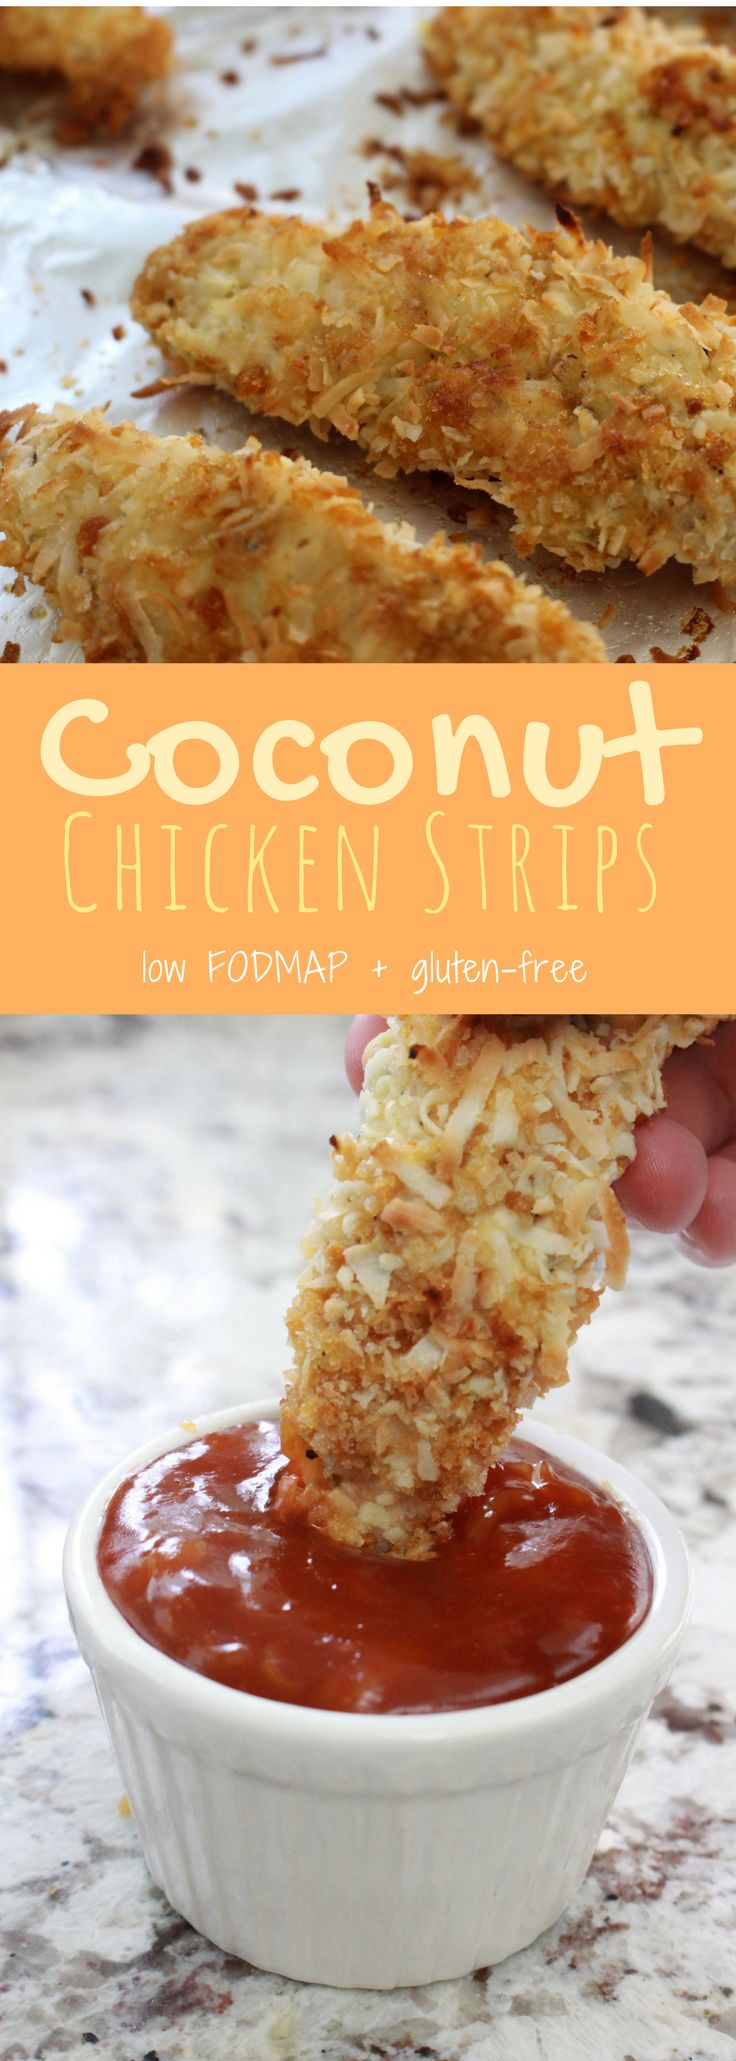 Healthy baked coconut chicken strips! Low FODMAP and gluten free. A great family and FODMAP friendly dinner! Dip in pineapple sweet and sour sauce.